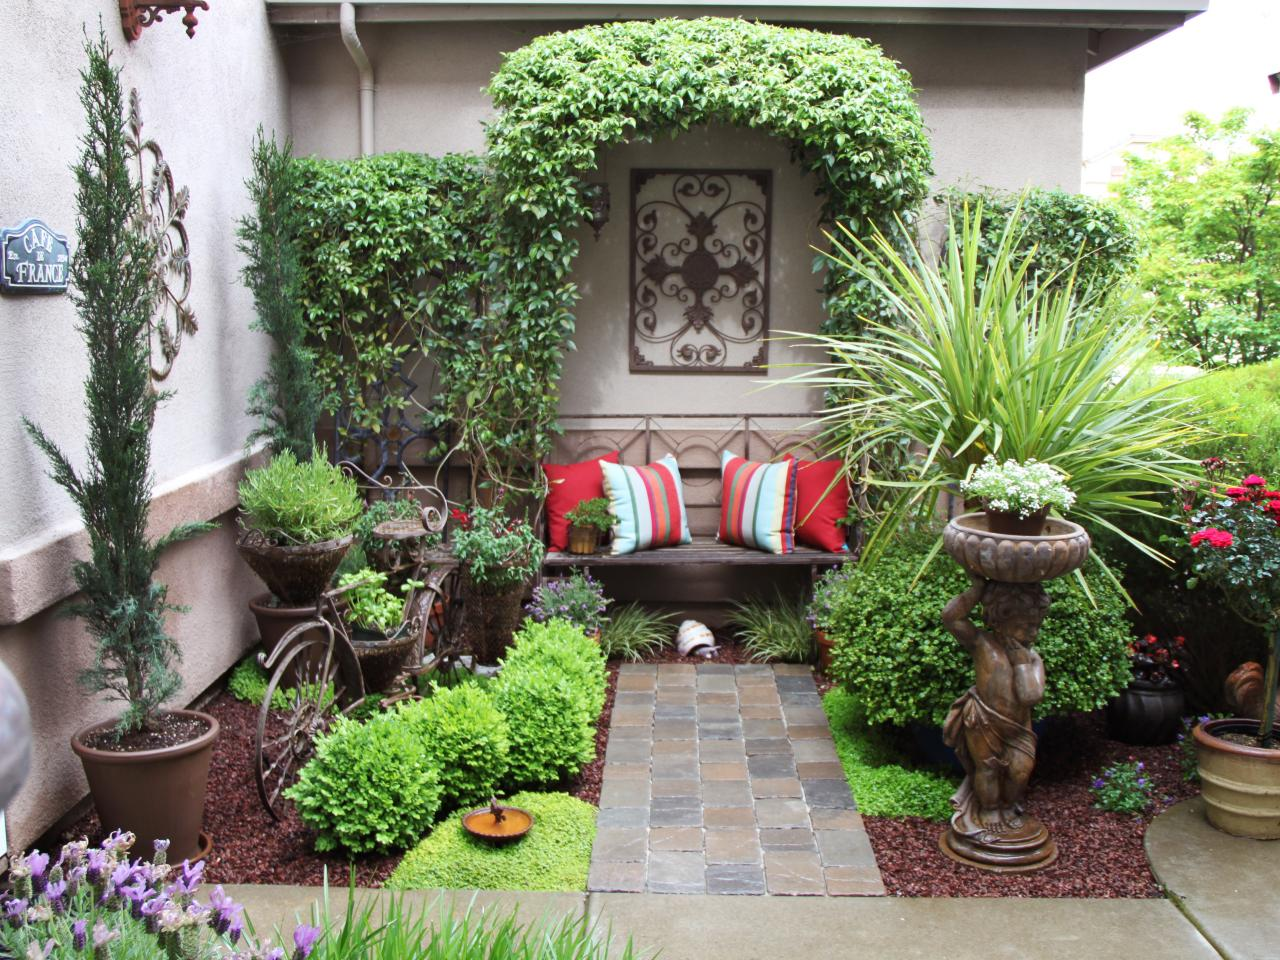 Courtyard garden design ideas hgtv for Italian courtyard garden design ideas